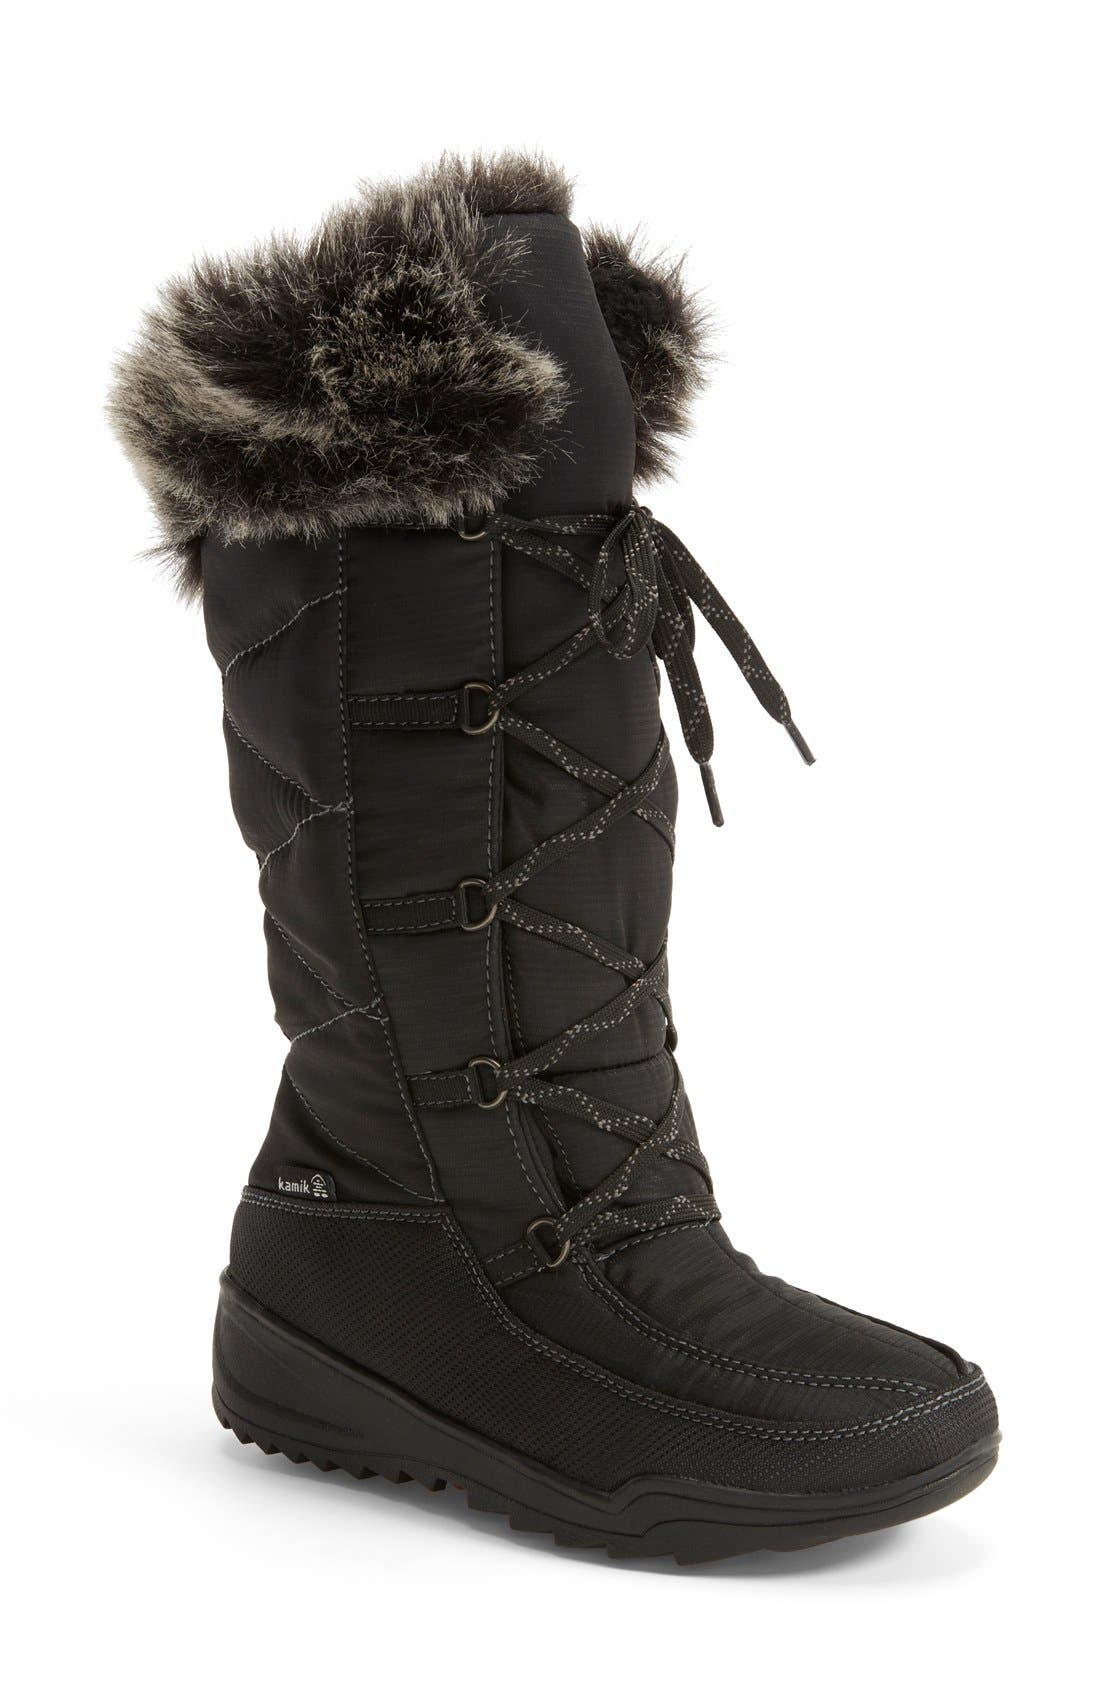 Alternate Image 1 Selected - Kamik 'Porto' Waterproof Winter Boot (Women)